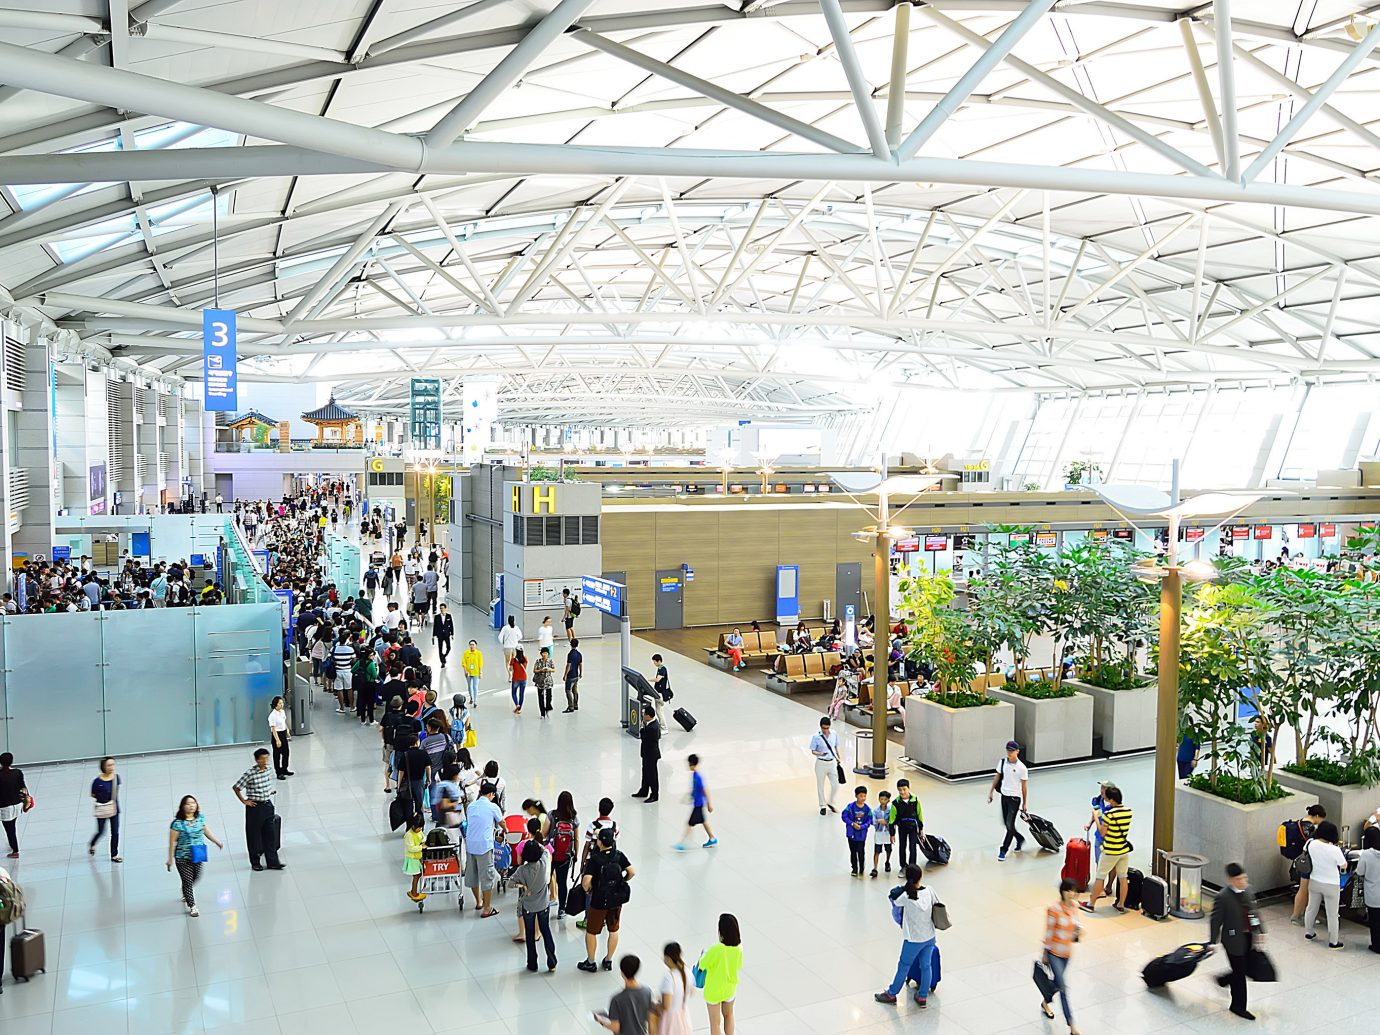 Offbeat Travel Tips indoor ceiling building shopping mall rink airport terminal airport group people ice rink retail public transport area several line